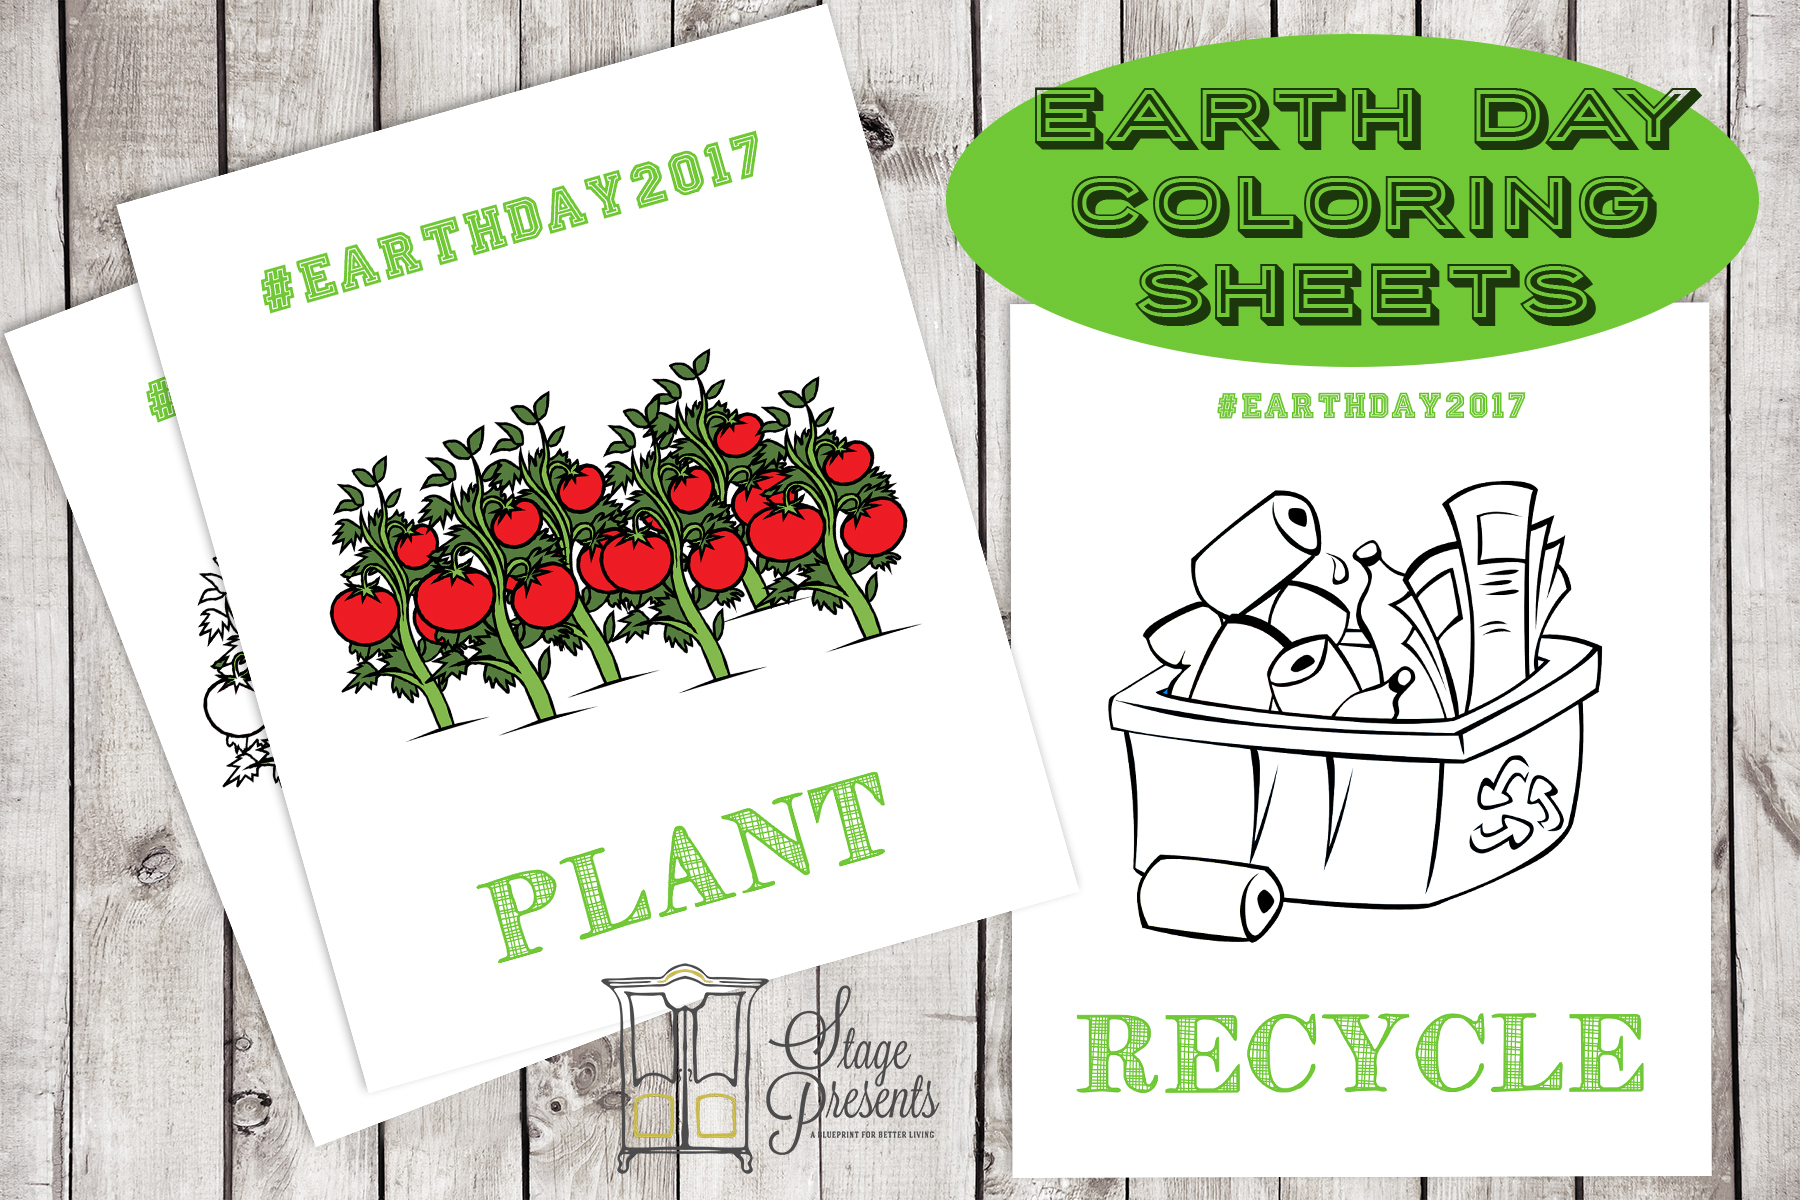 Earth Day Coloring Sheets 2017 Mockup